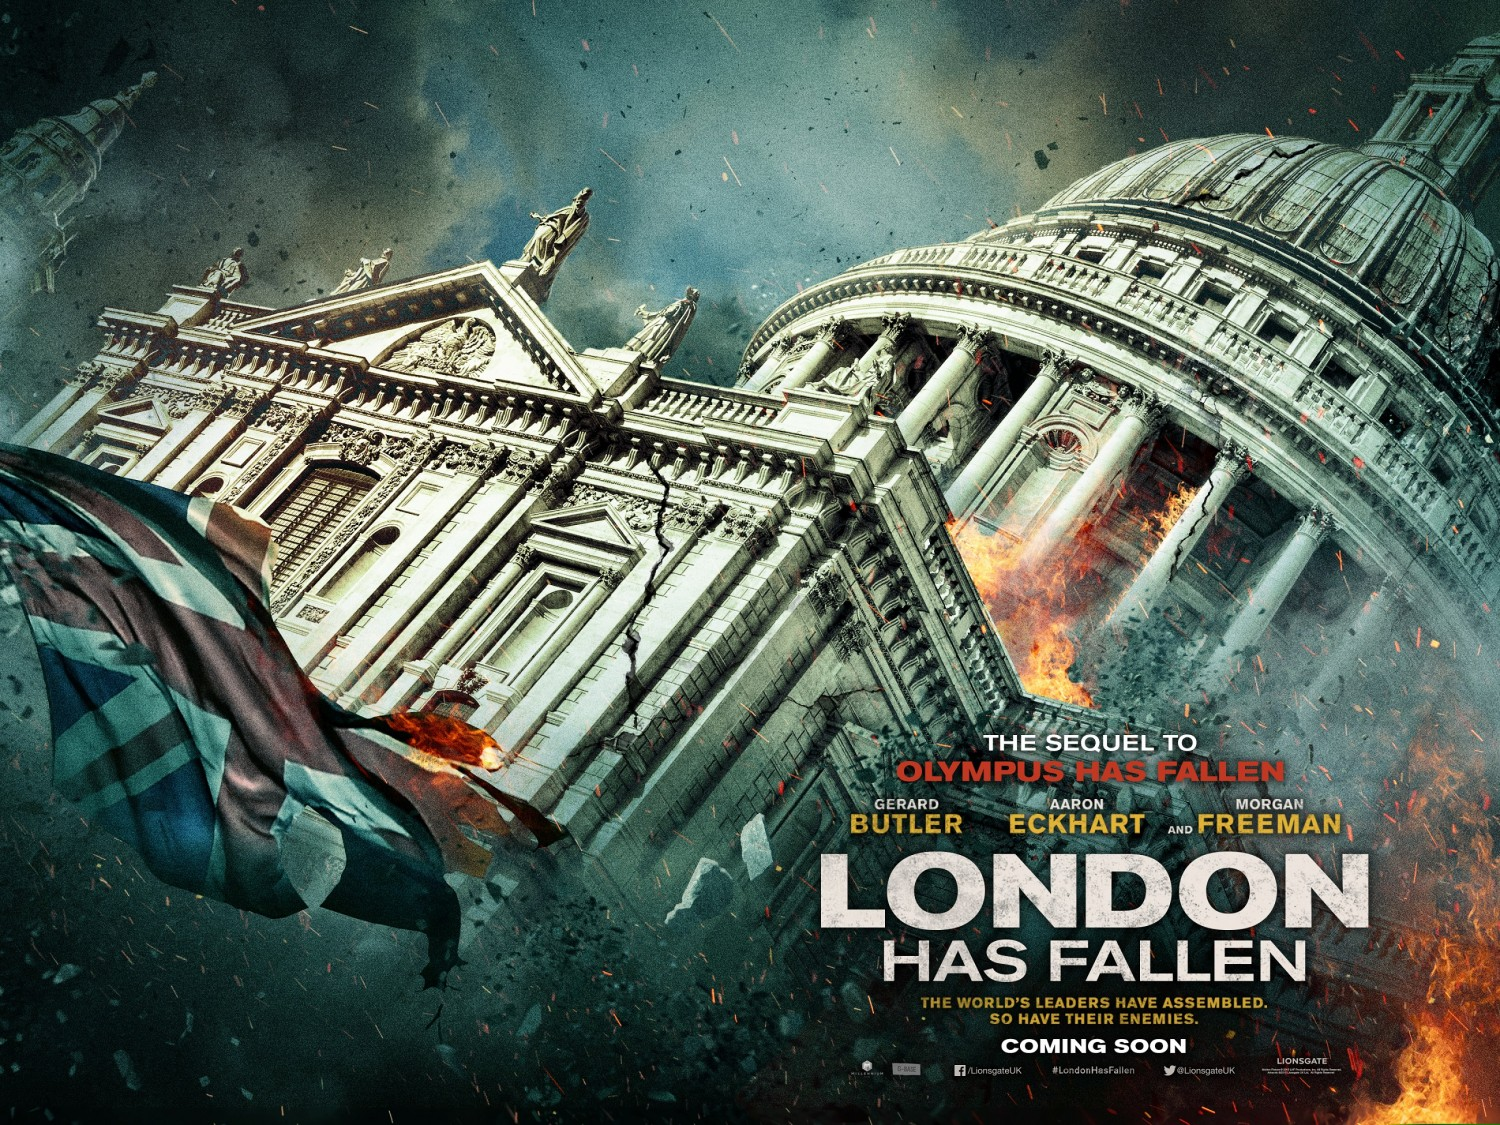 http://cdn2-www.comingsoon.net/assets/uploads/gallery/london-has-fallen_1/london_has_fallen_ver3_xlg.jpg